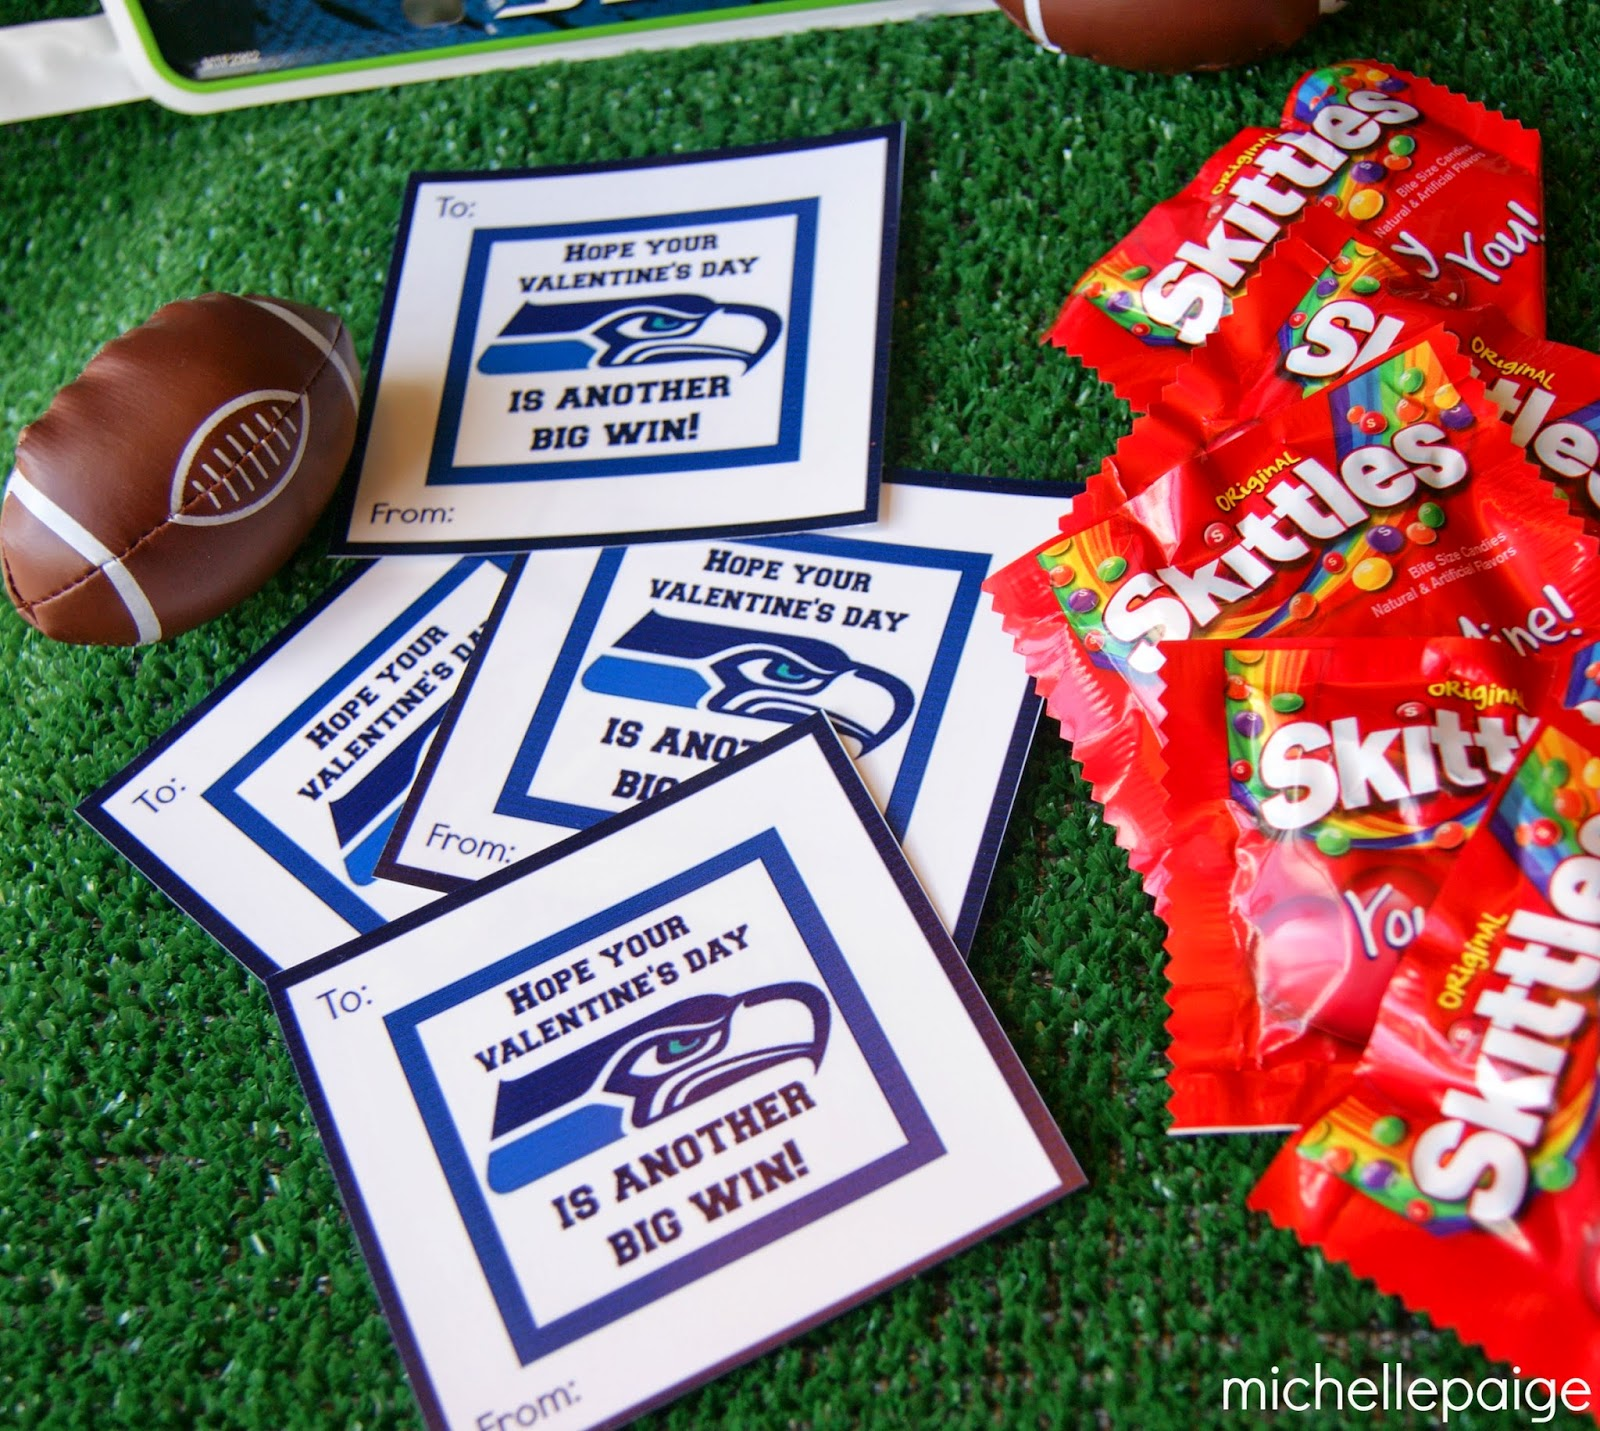 Michelle paige blogs seattle seahawks football valentines for Valentines day ideas seattle